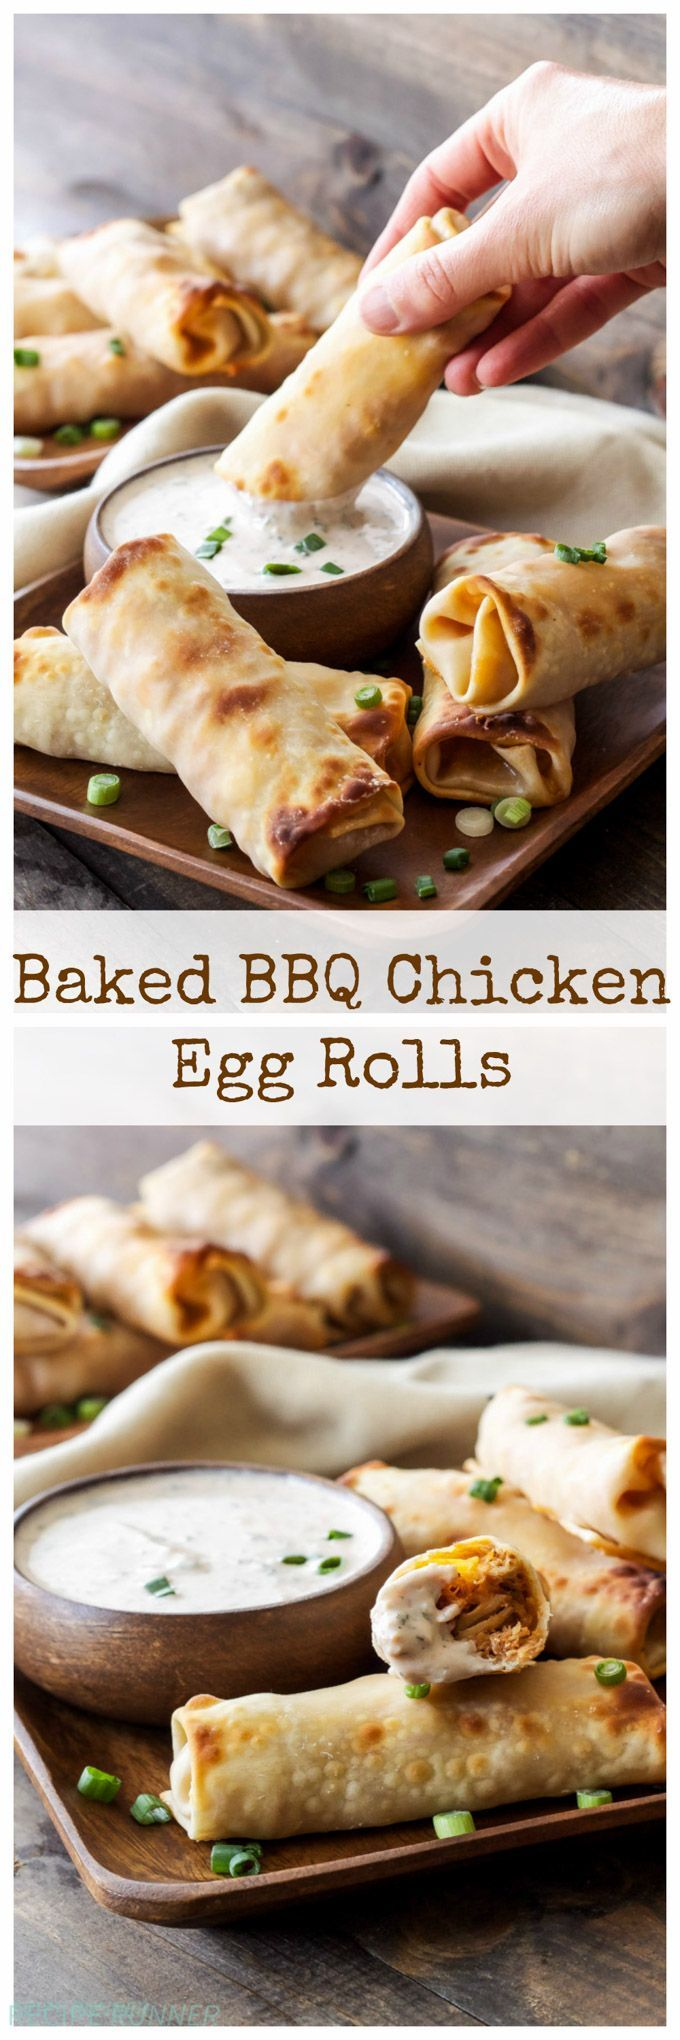 Baked BBQ Chicken Egg Rolls with BBQ Ranch Dipping Sauce | Stuffed with shredded BBQ chicken and cheese, these egg rolls will become your new favorite appetizer!